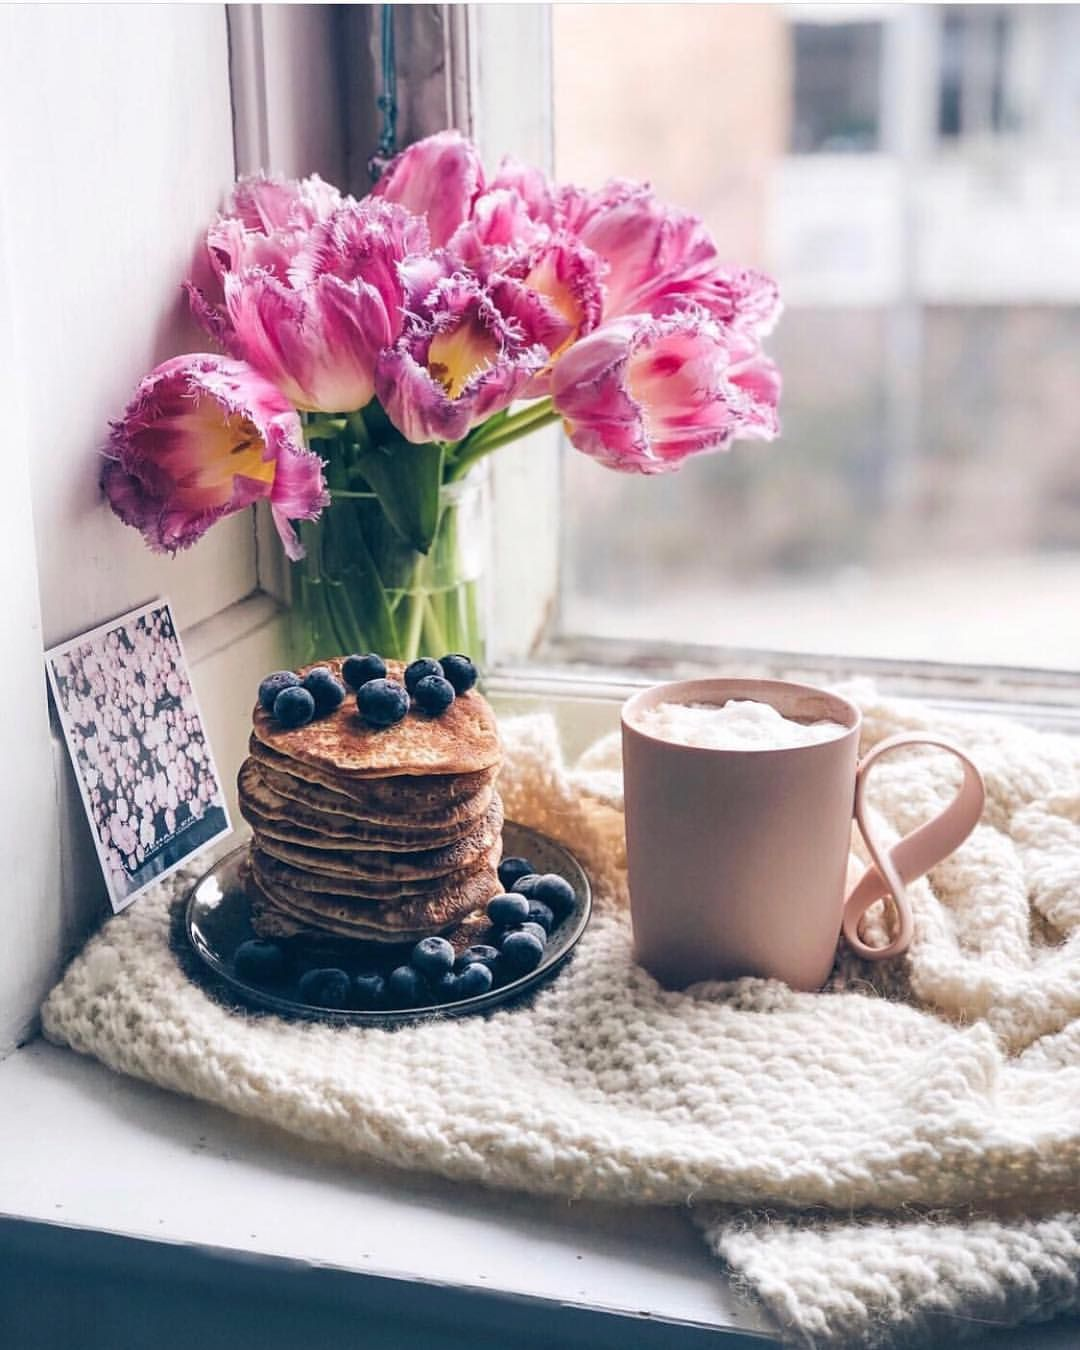 Fresh Cuppa And Pancakes By The Window How Dreamy By Birgittetheresa Naughtyteas Chosen By Mang Coffee Breakfast Coffee Photography Winter Coffee